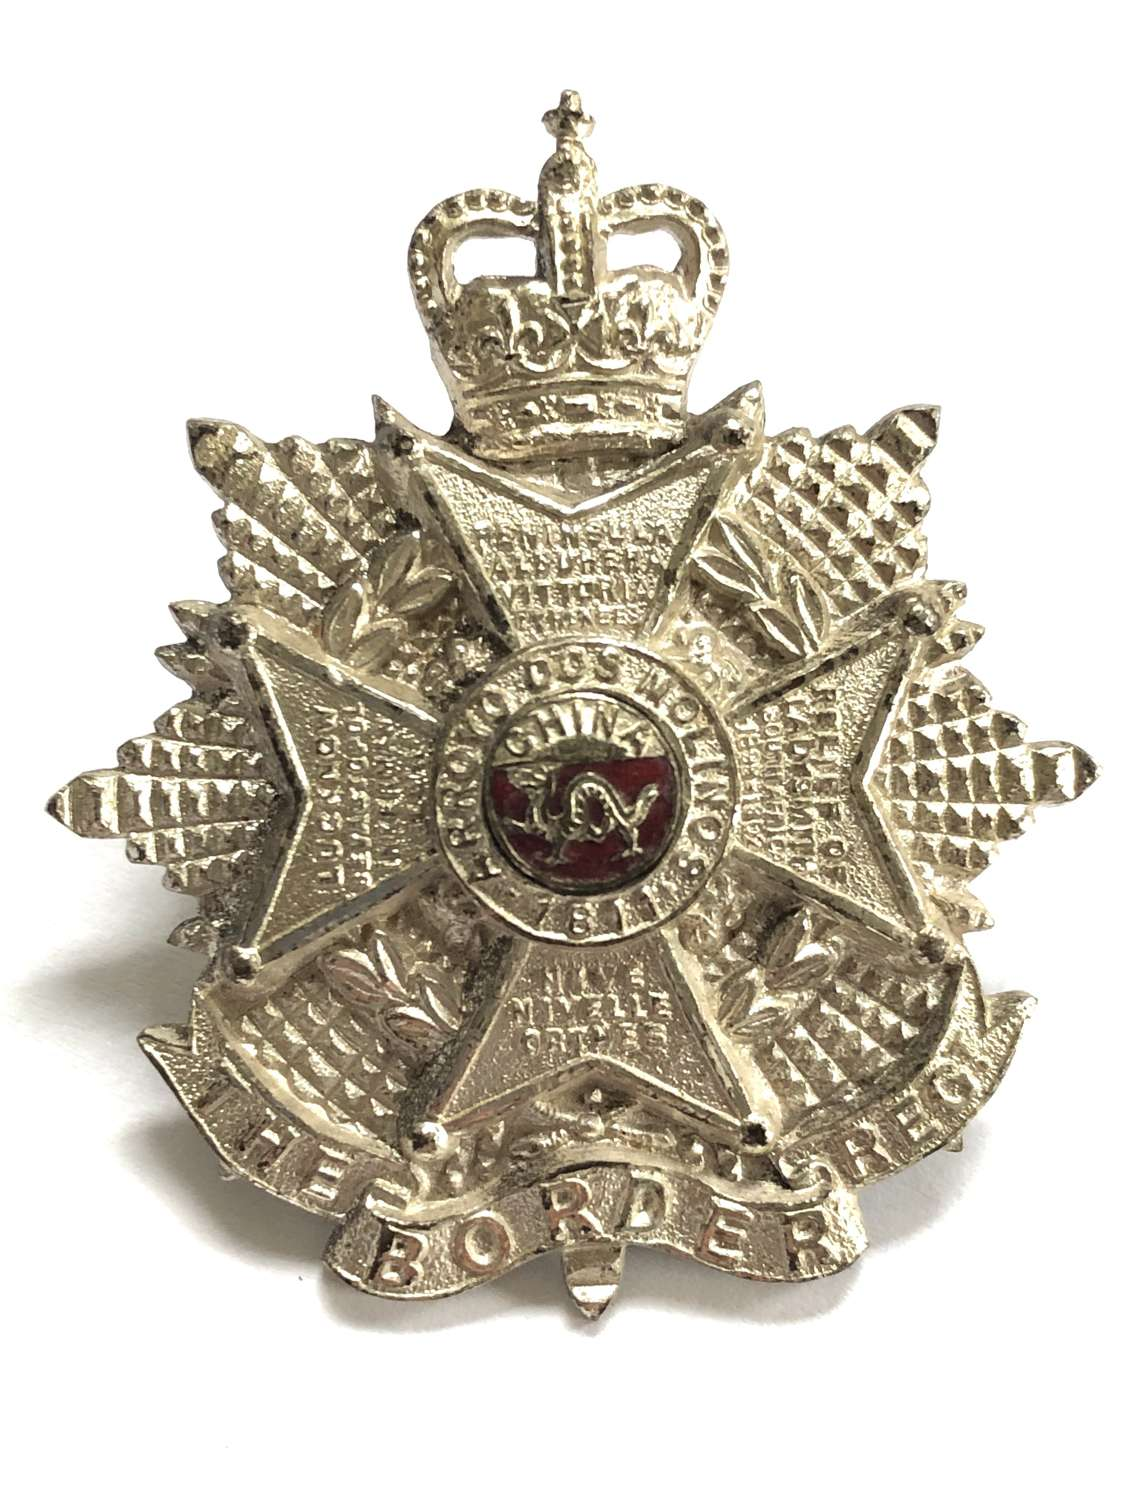 Border Regiment Officer's silvered and enamel cap badge circa 1953-5